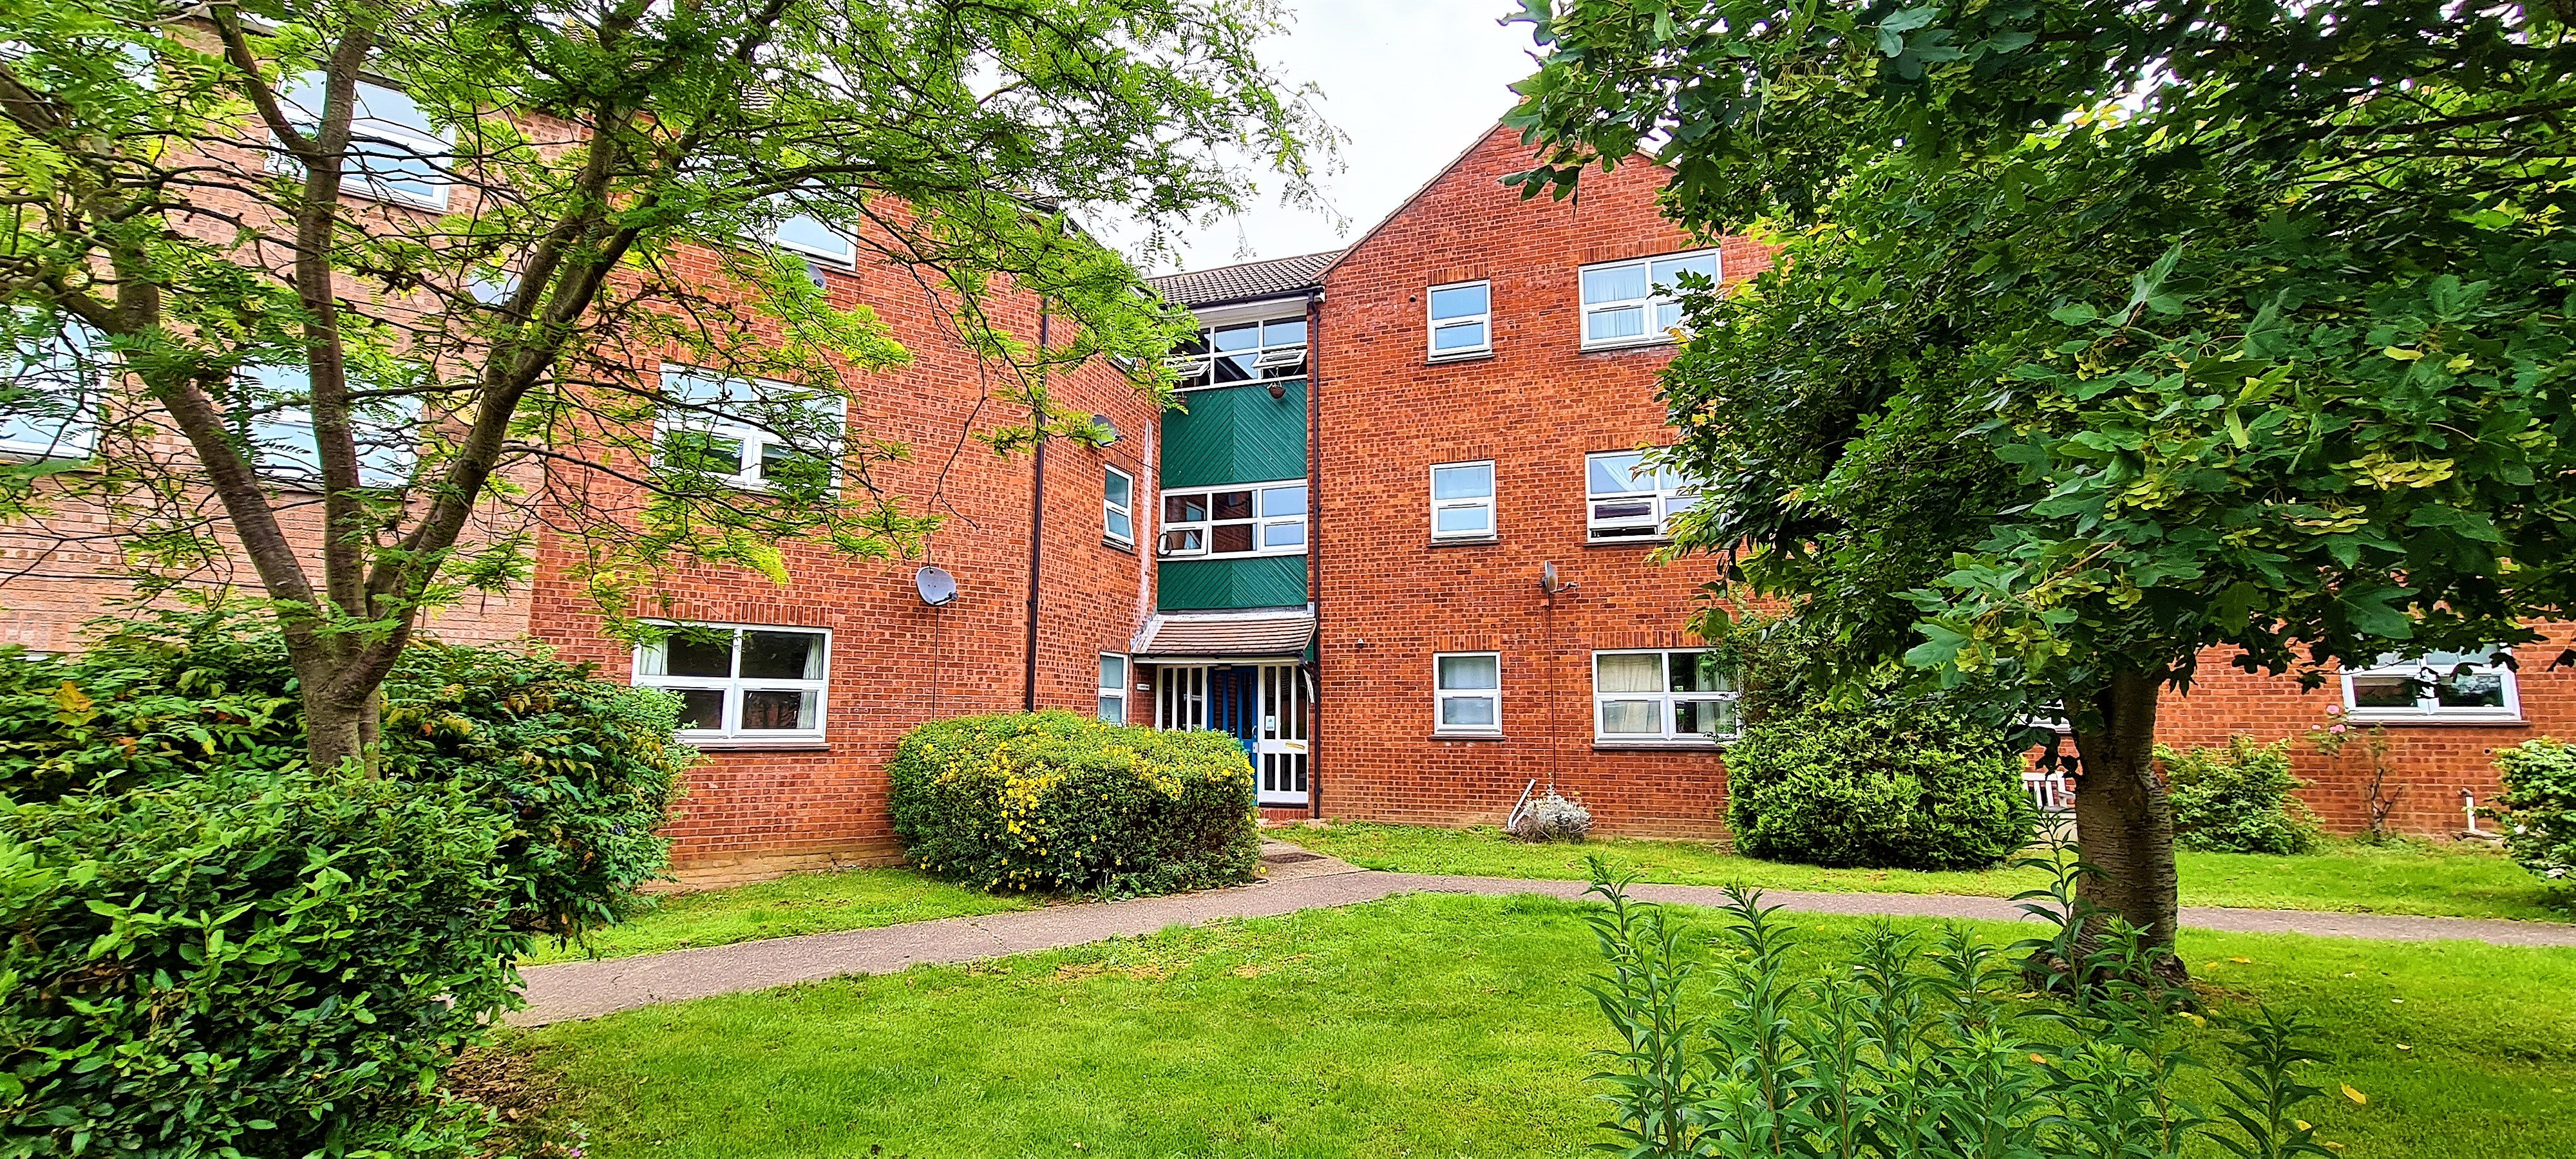 1 bed flat for sale in Nelson Place, South Woodham Ferrers - Property Image 1